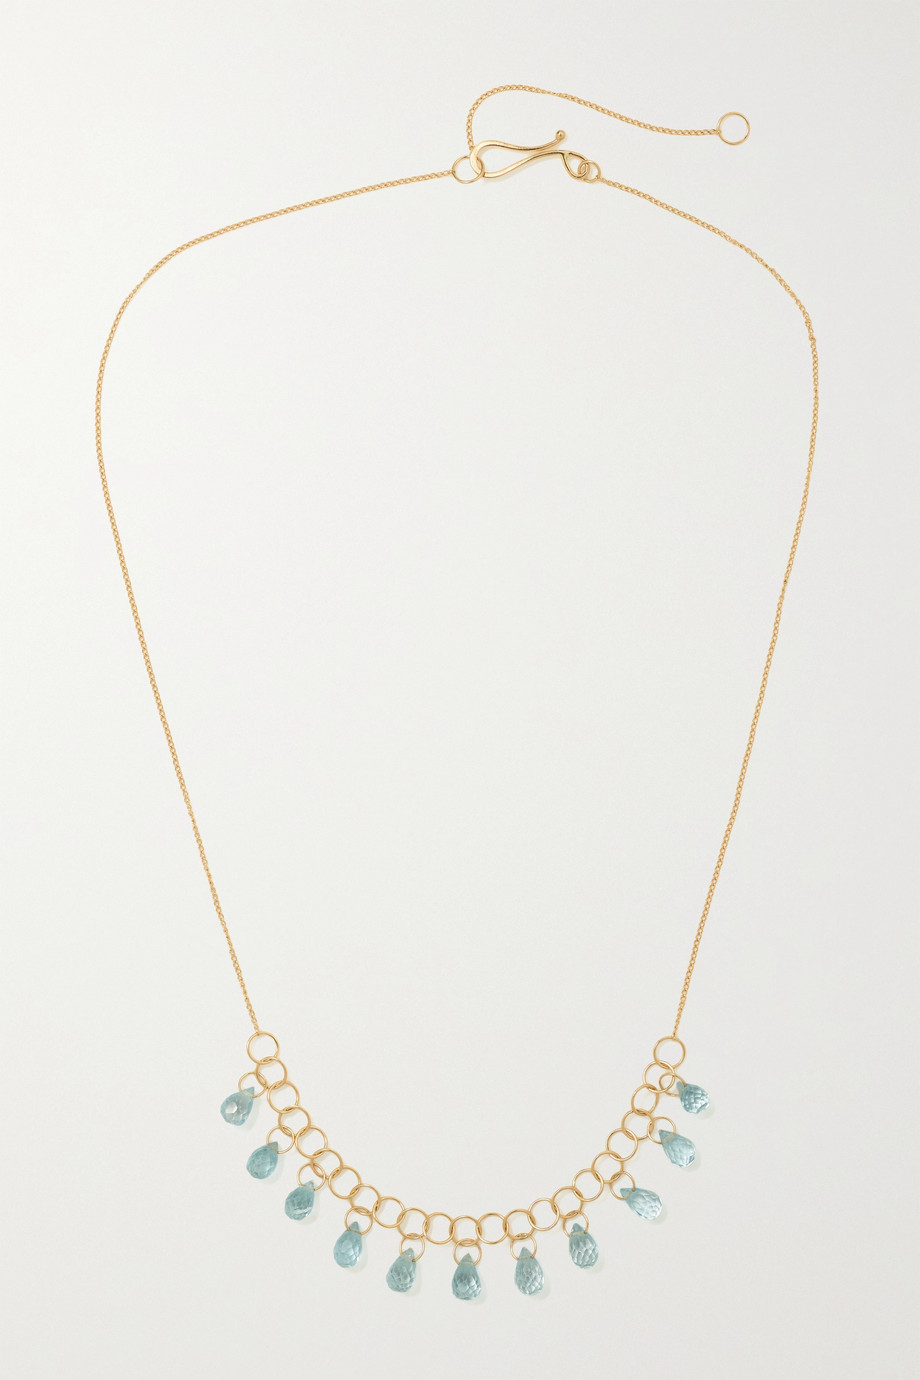 MELISSA JOY MANNING 14-karat recycled gold topaz necklace